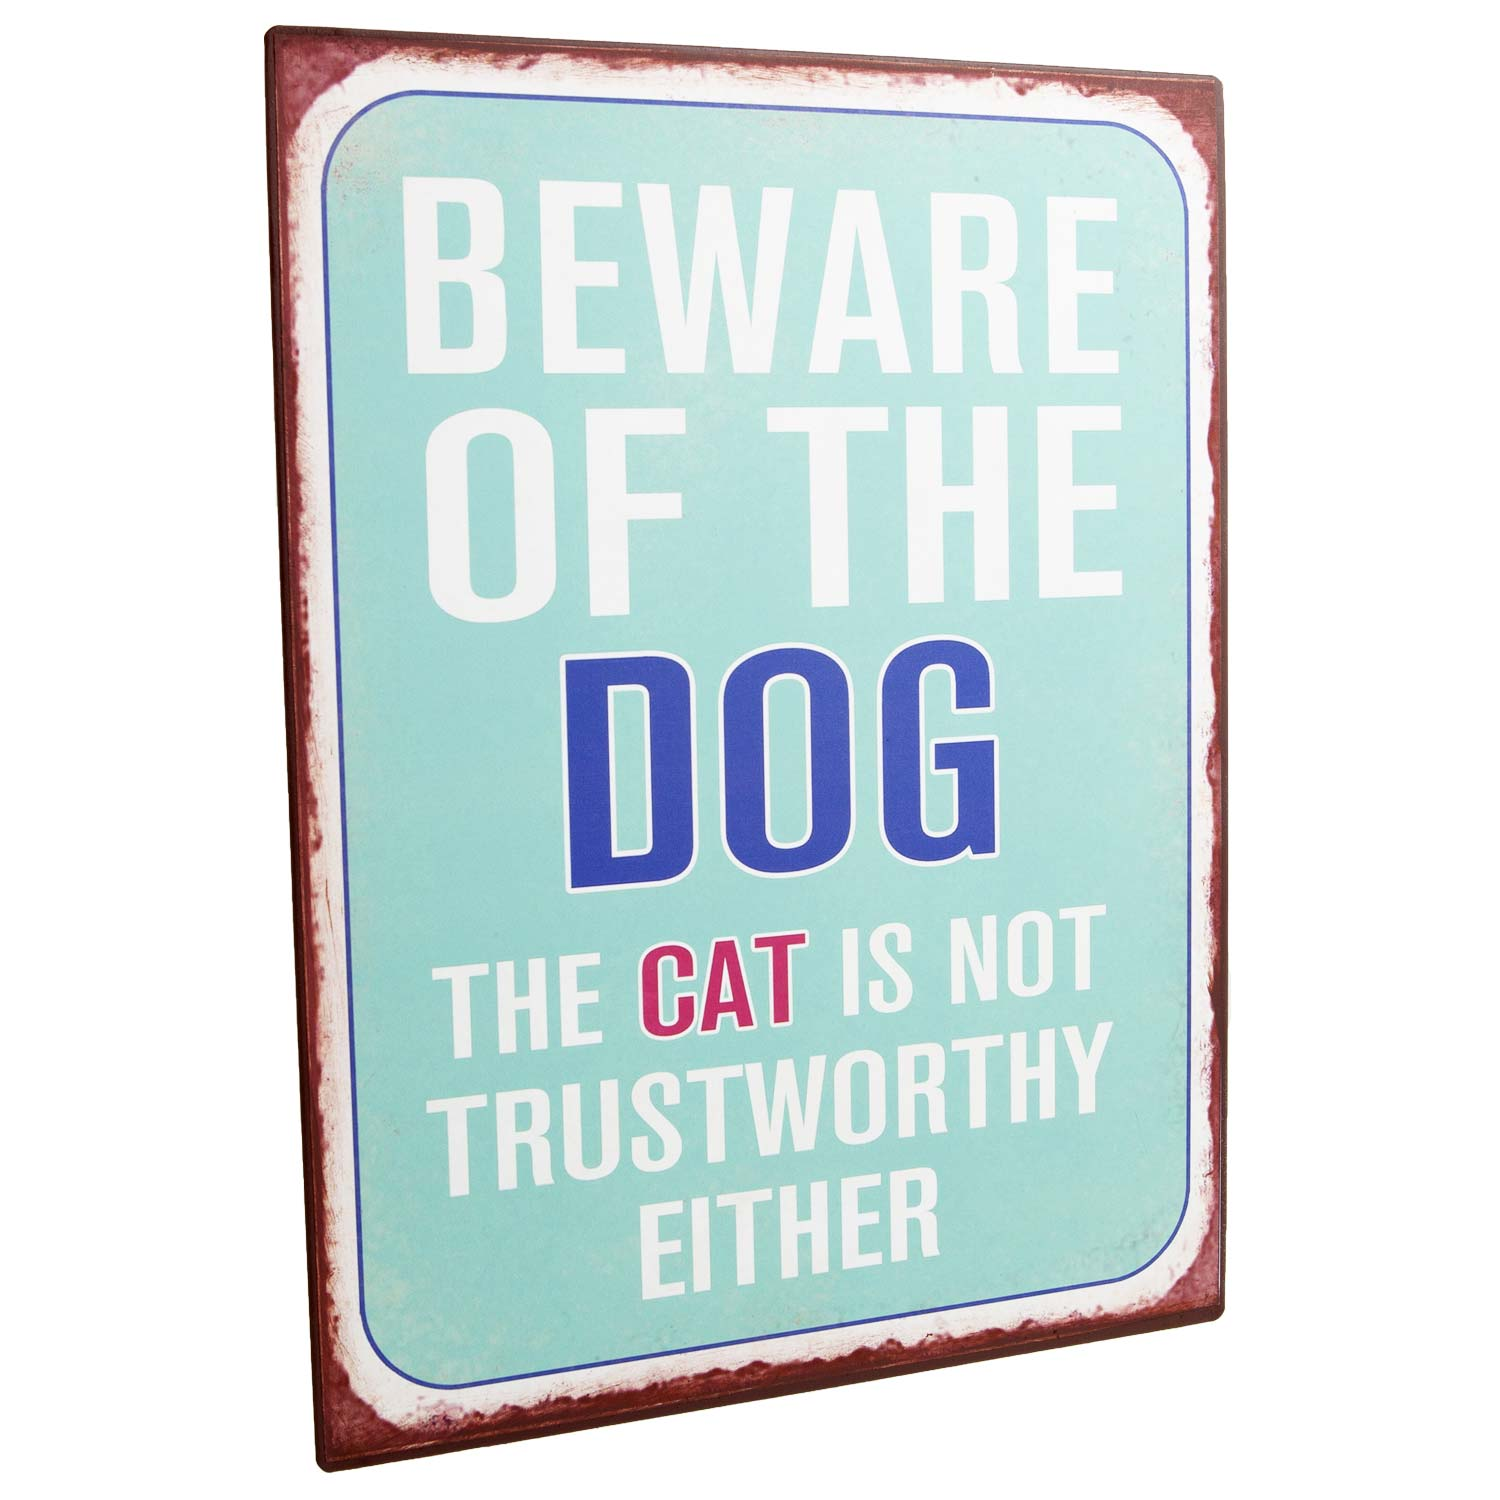 Dog Krazy Gifts - Beware Of The Dog The Cat Is Not Trustworthy Either Metal Sign part of the wide range dog themed signs available from DogKrazyGifts.co.uk